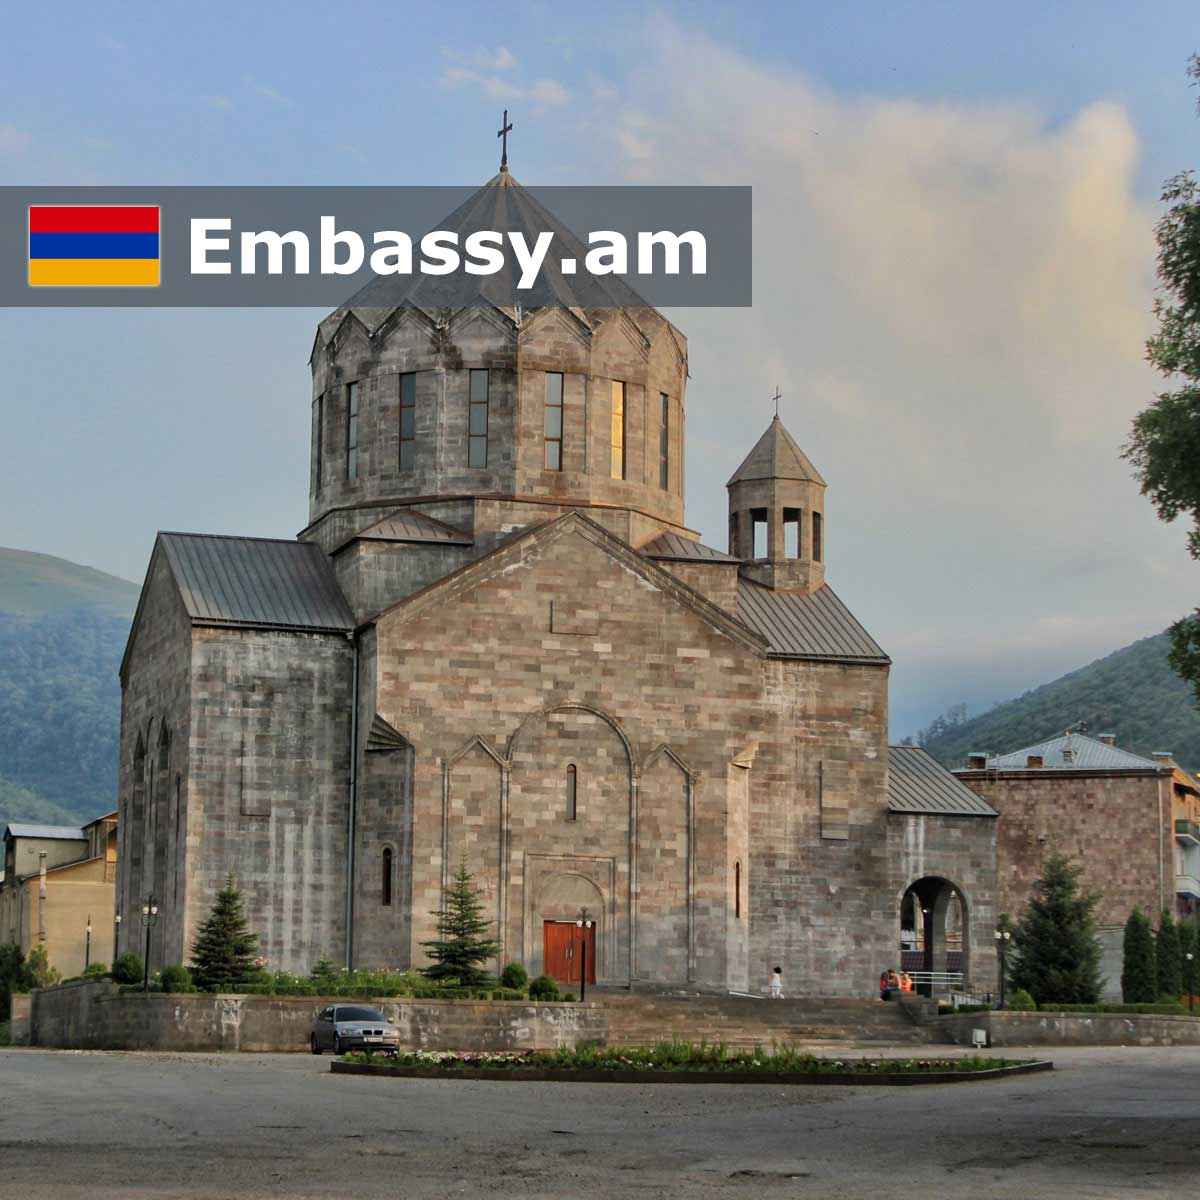 Vanadzor - Hotels in Armenia - Embassy.am